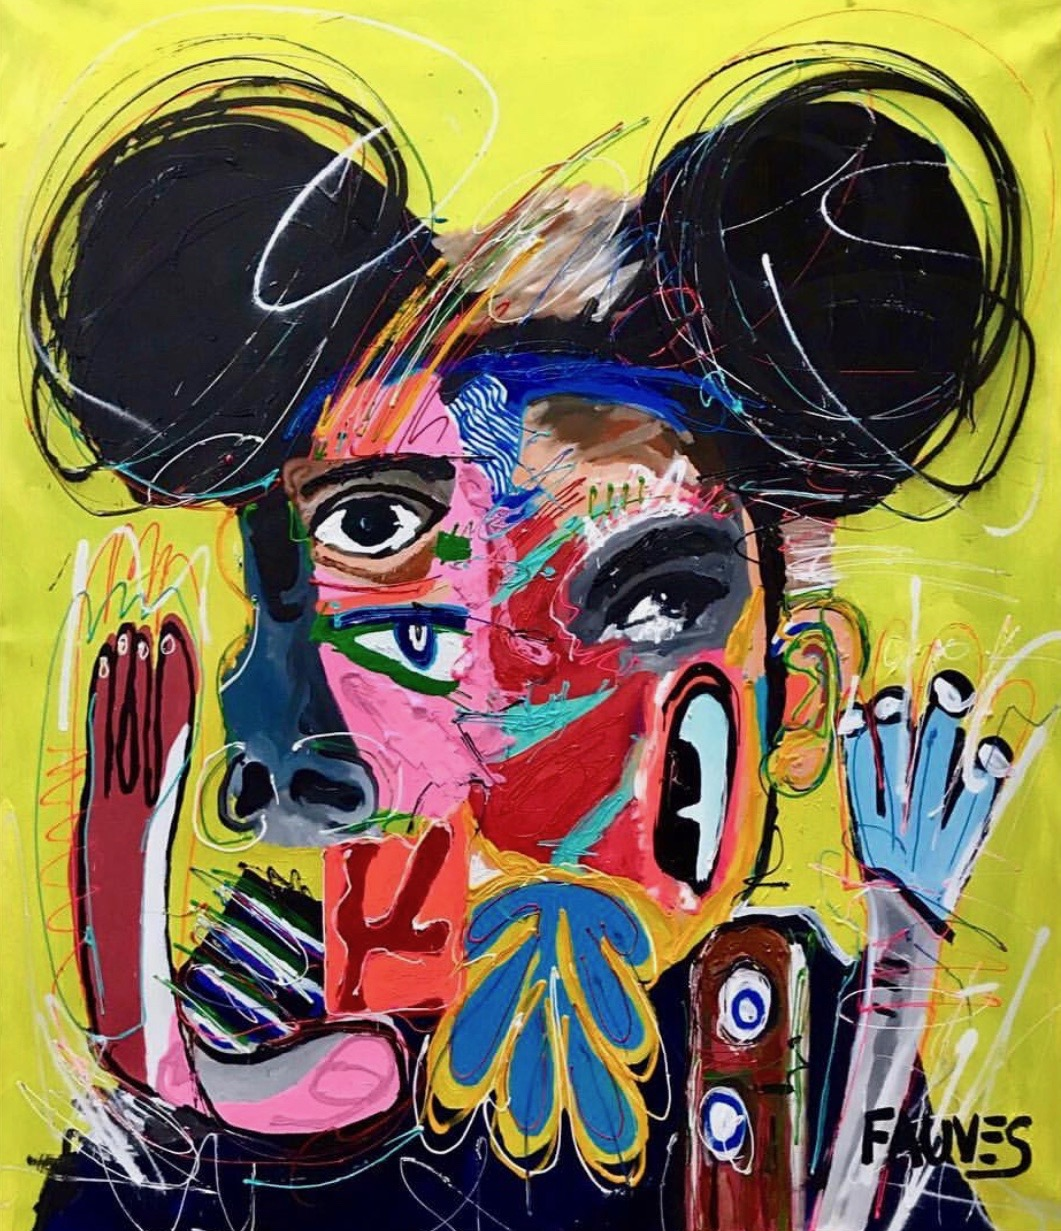 Working On Flow by John Paul Fauves